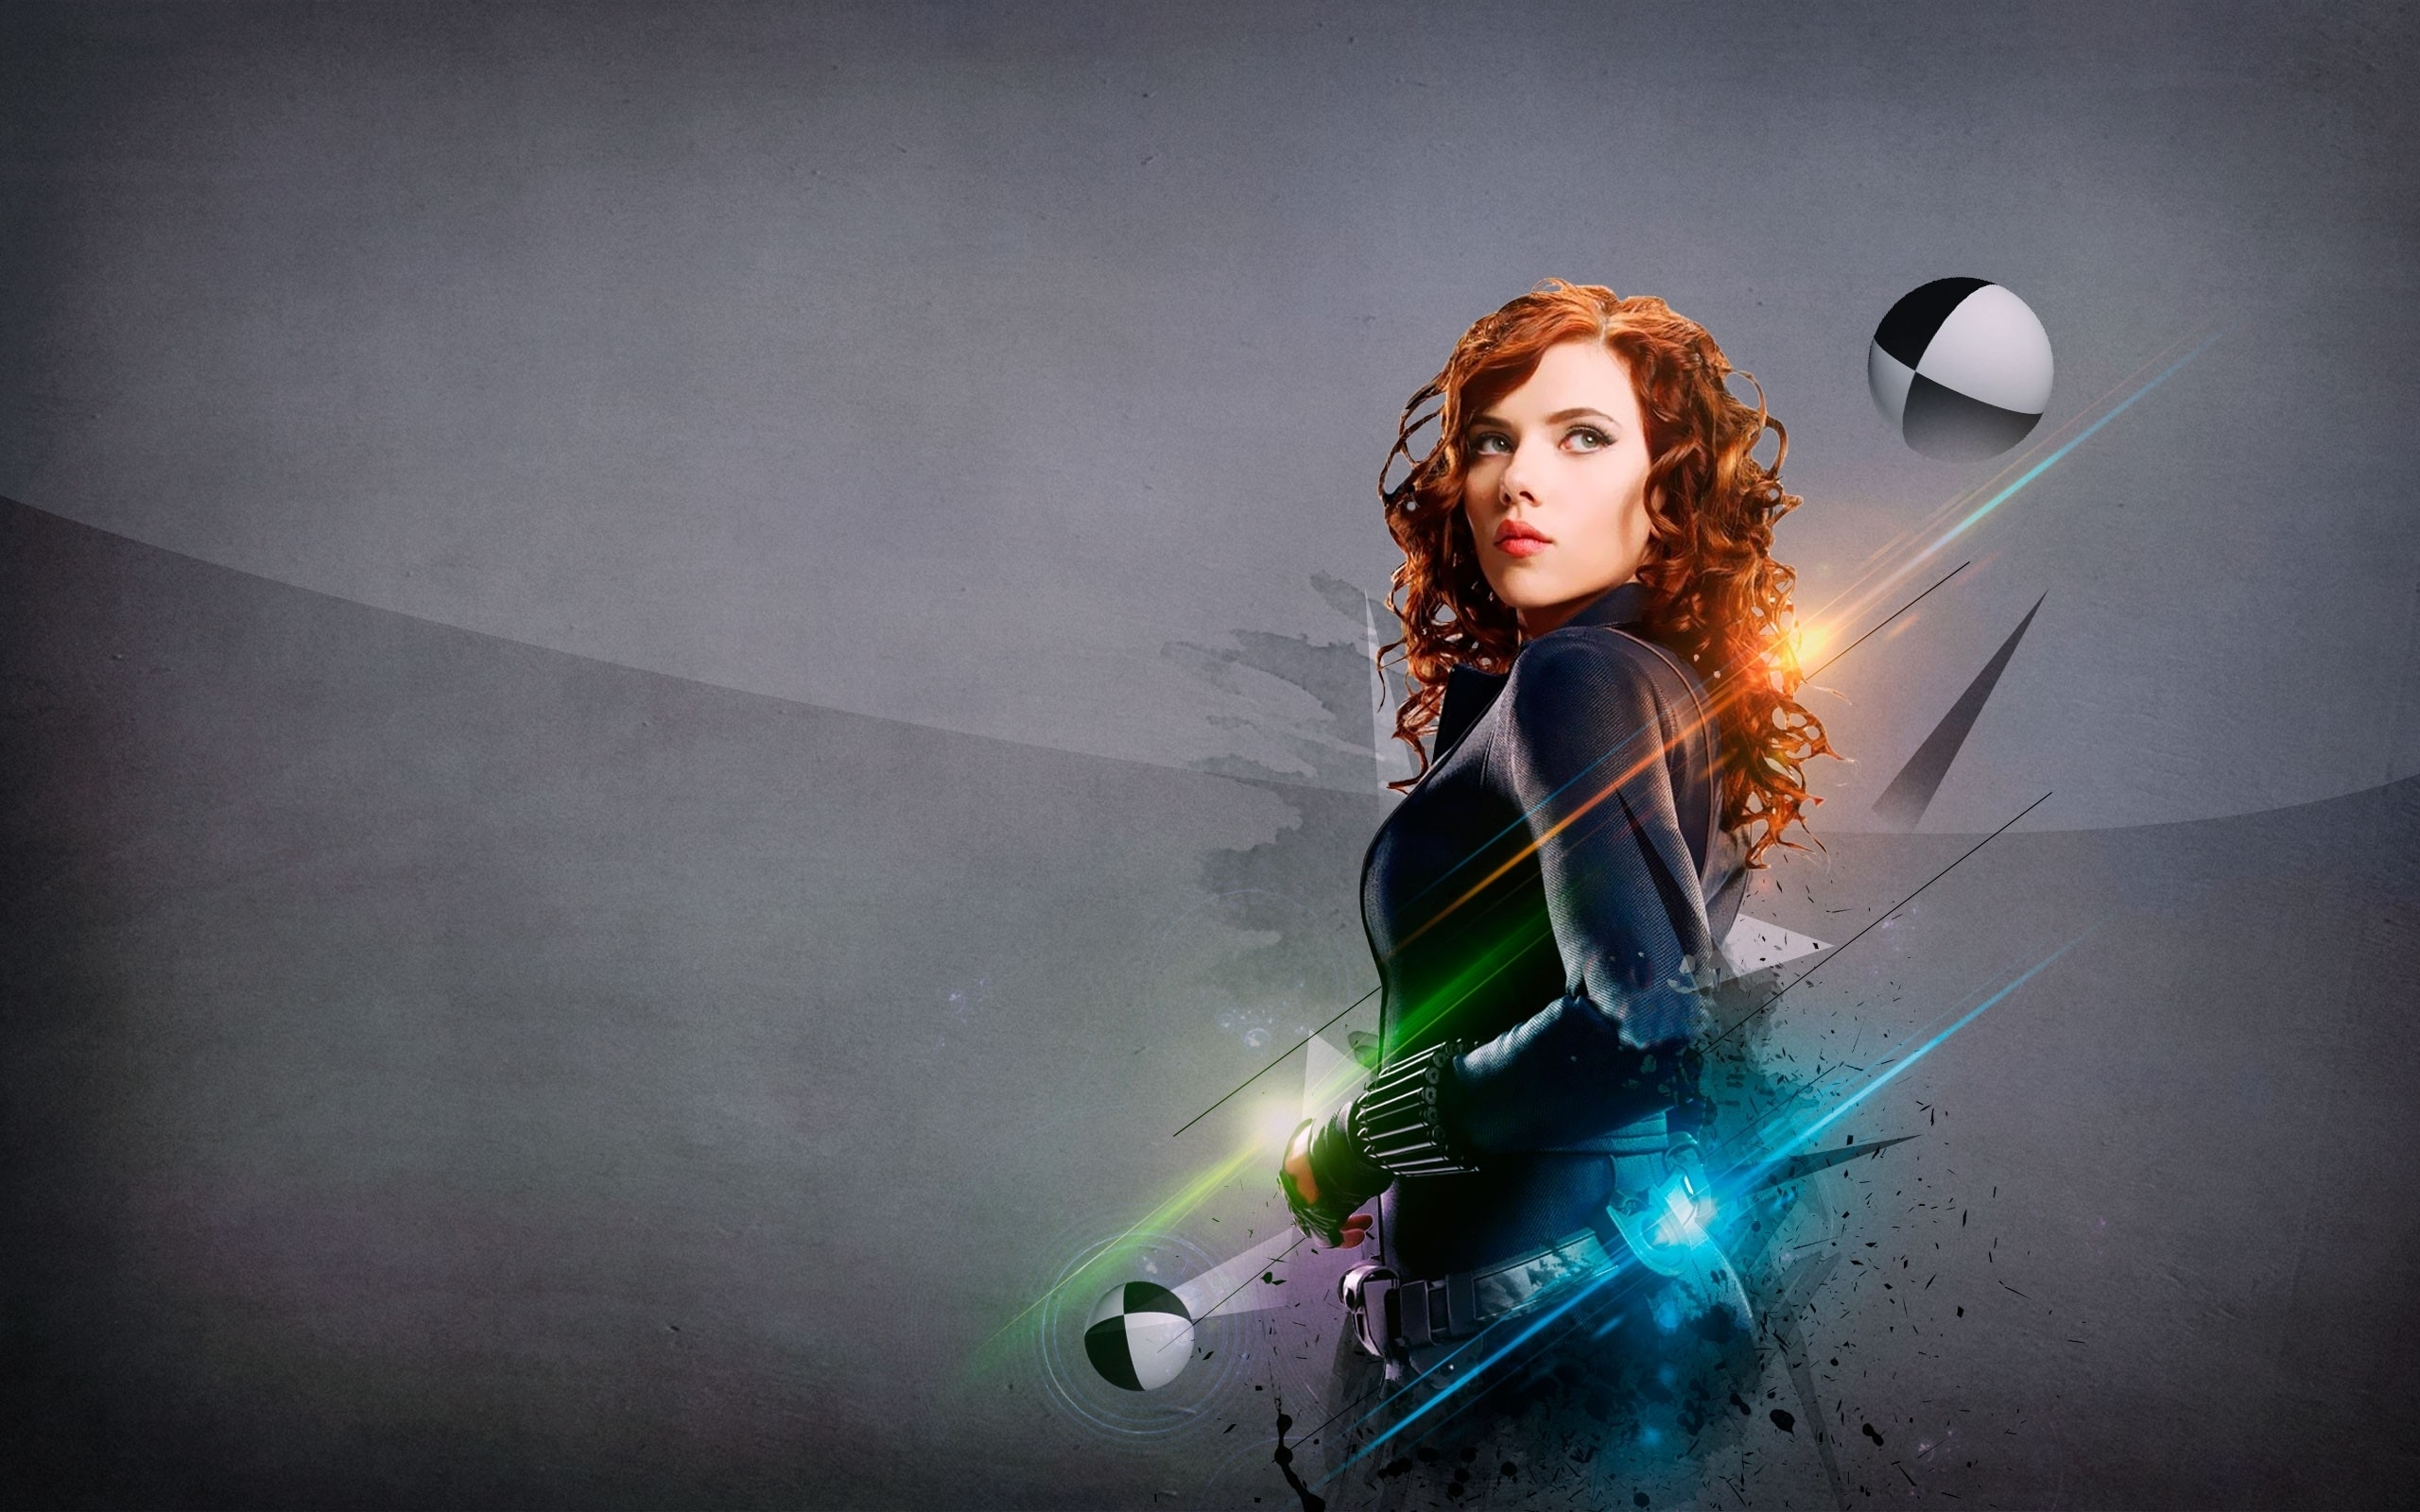 Scarlett Johansson Wallpaper: Black Widow Wallpapers Scarlett Johansson